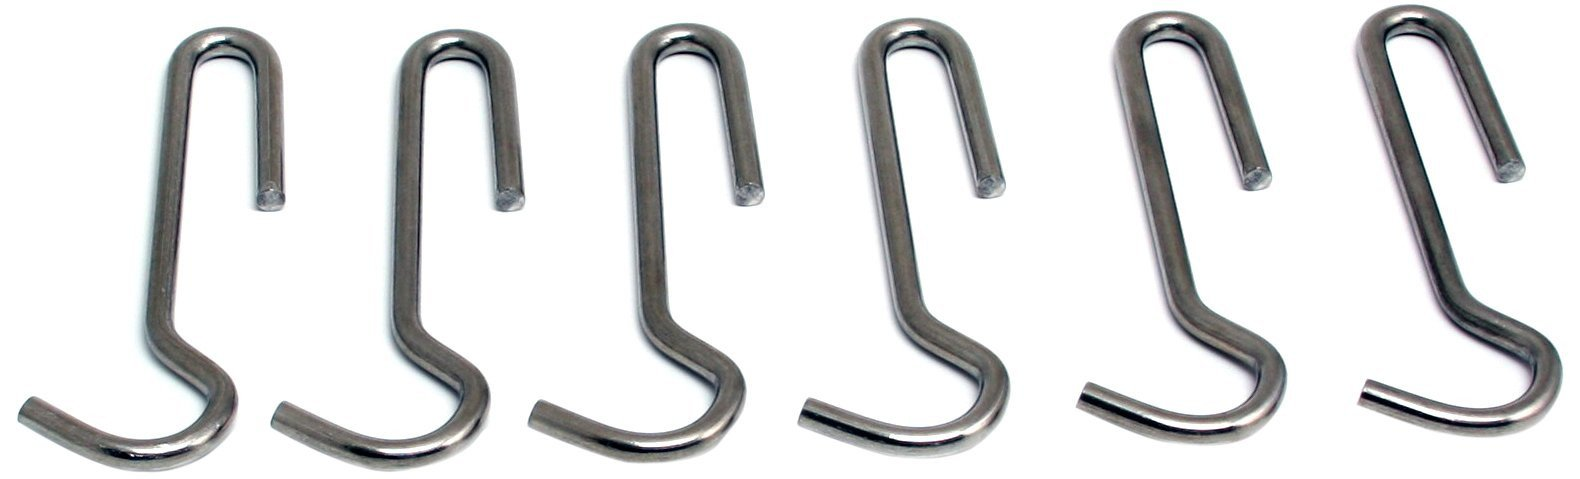 Enclume Straight Pot Hook, Set Of 6, Use With Pot Racks, Stainless Steel